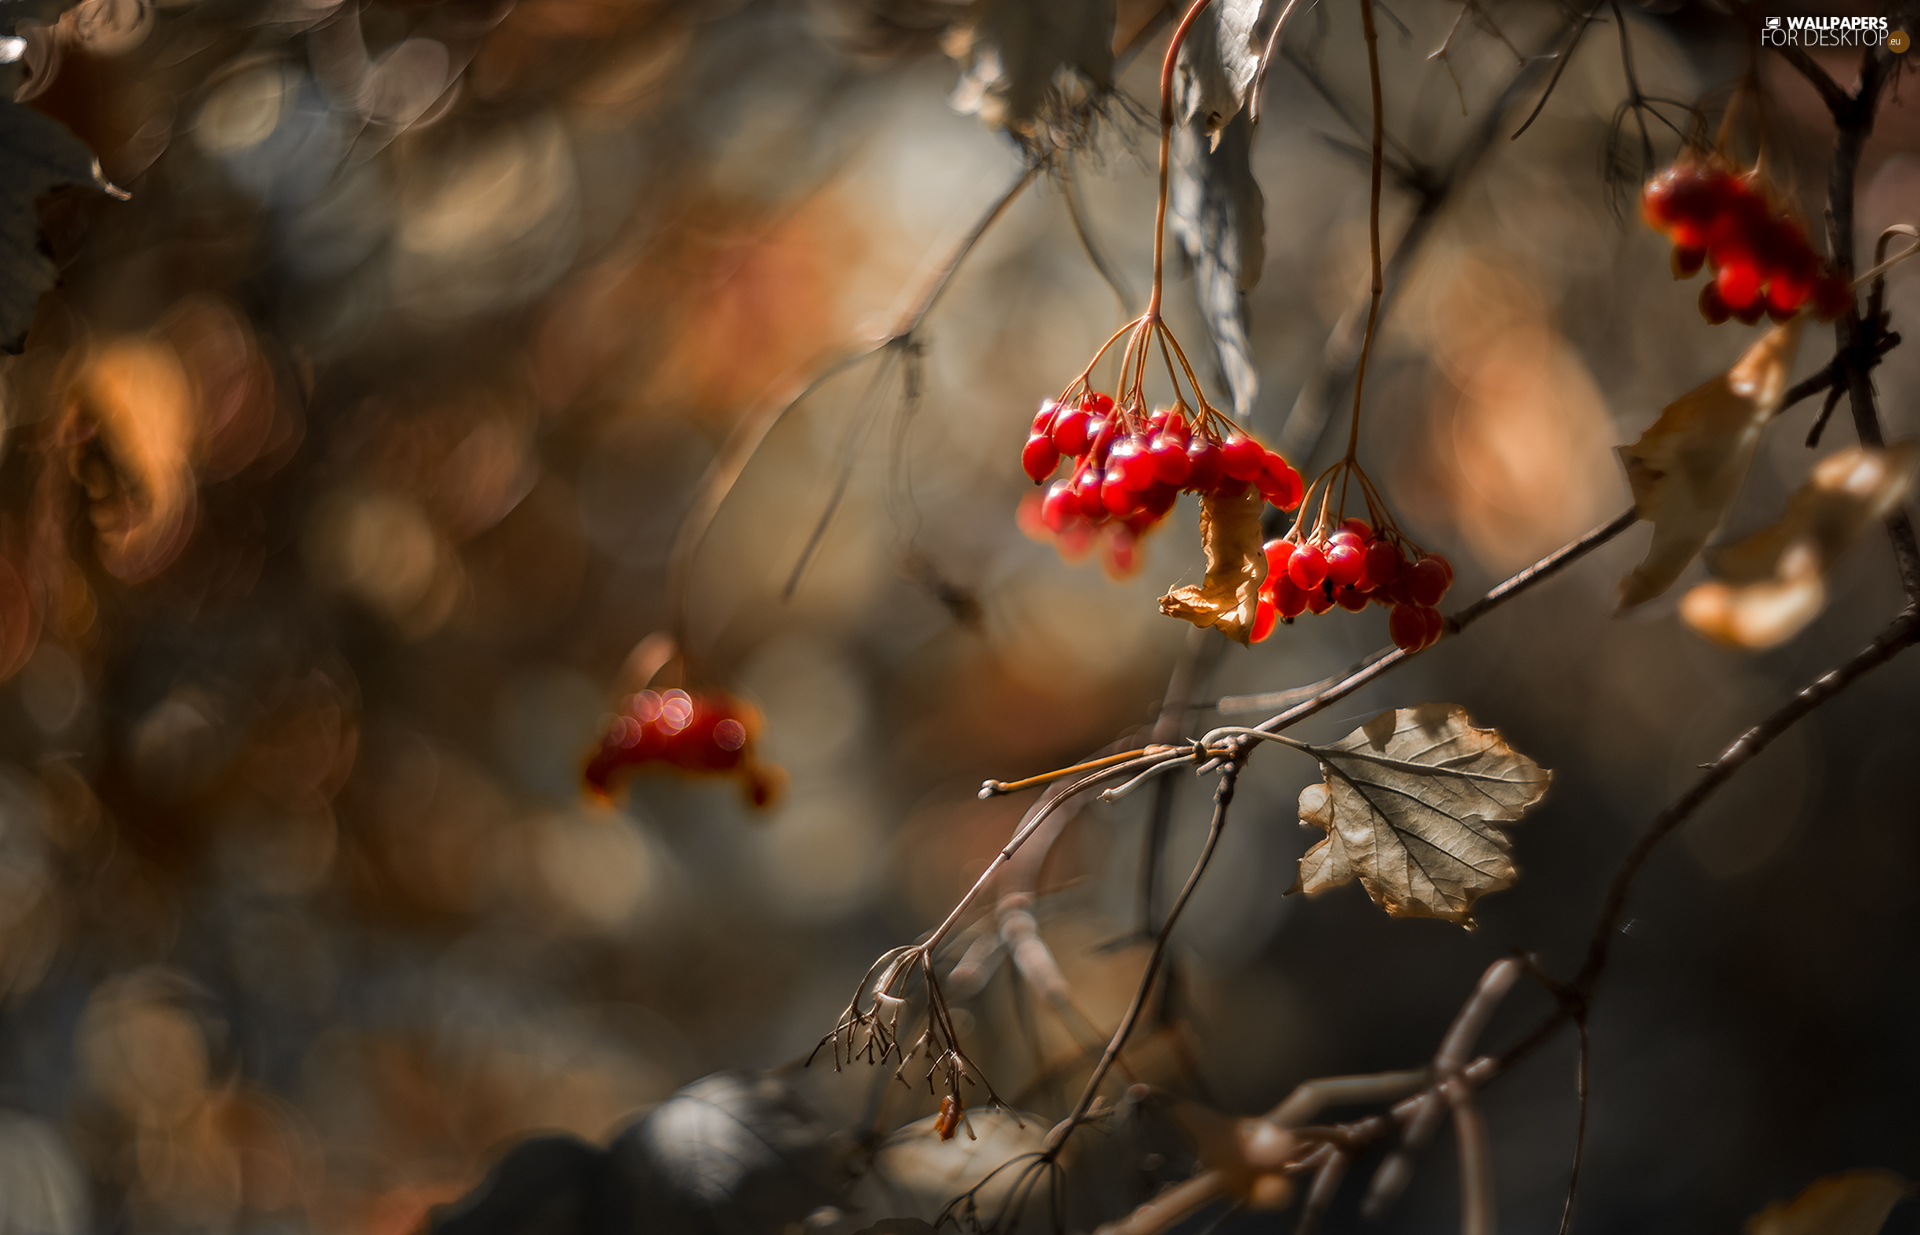 Red, Autumn, dry, leaves, Fruits, Twigs